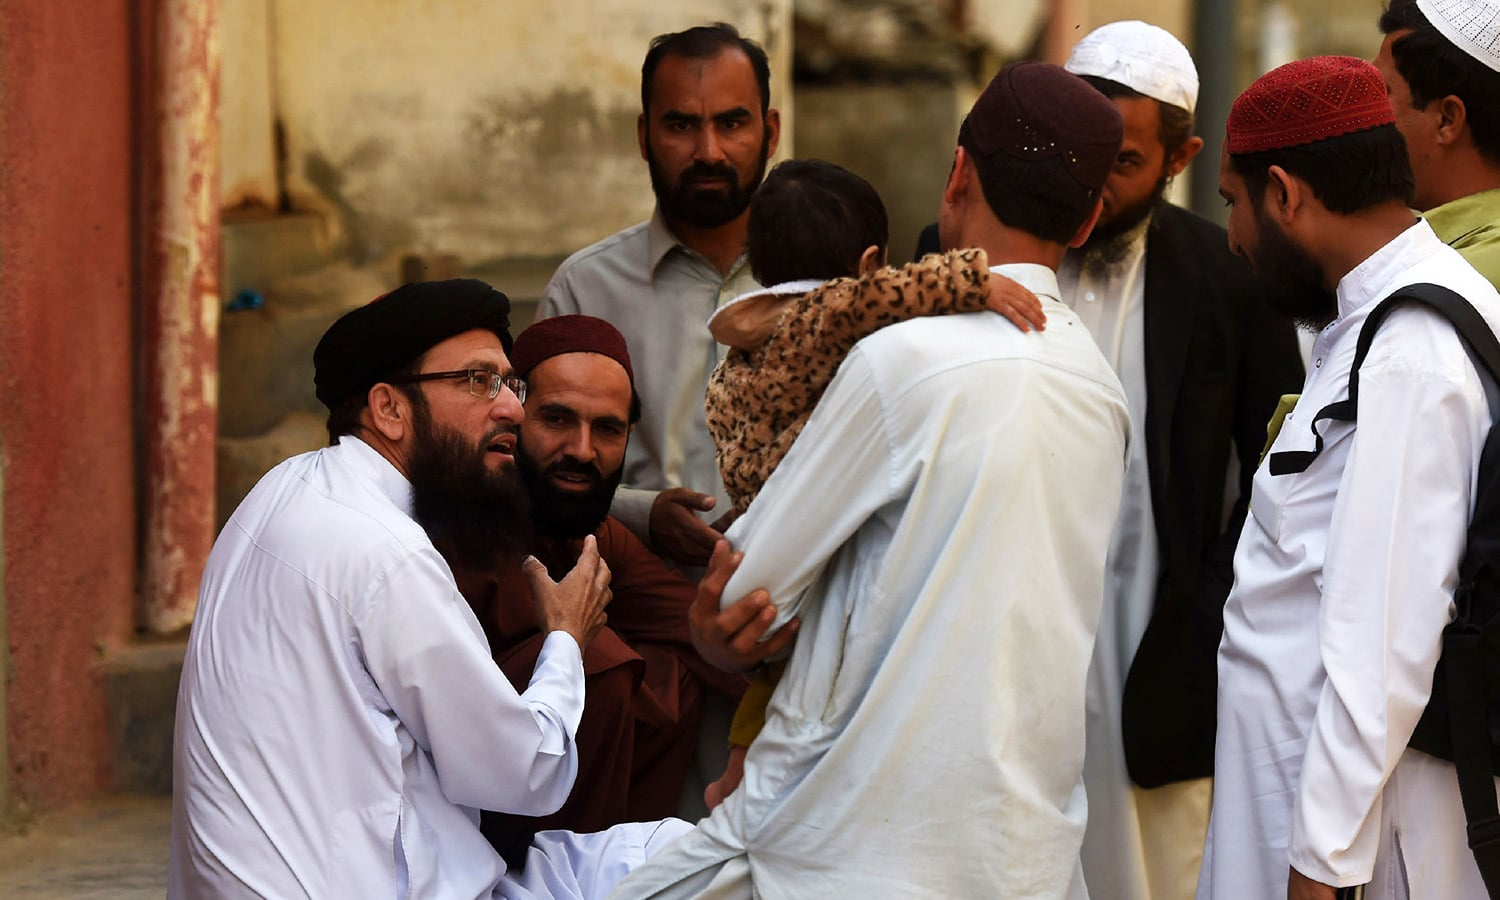 Government appointed Islamic cleric Maulana Umar Sadiq (L) explains polio vaccination programme to Pashtun community members in Karachi.—AFP